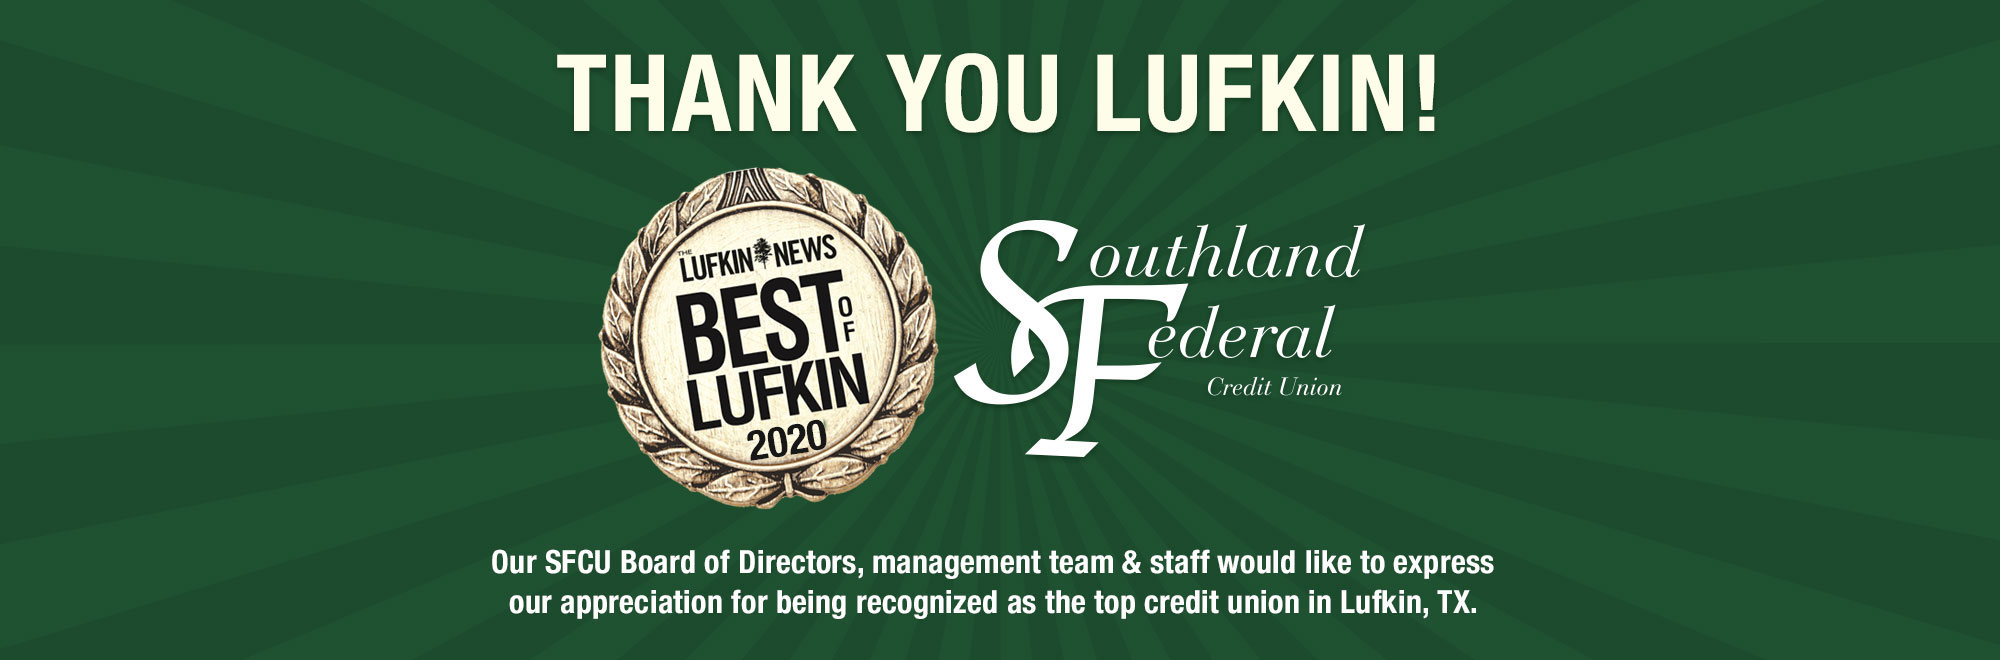 Our Board, management & staff would like to express our appreciation for being recognized as the top credit union in Lufkin